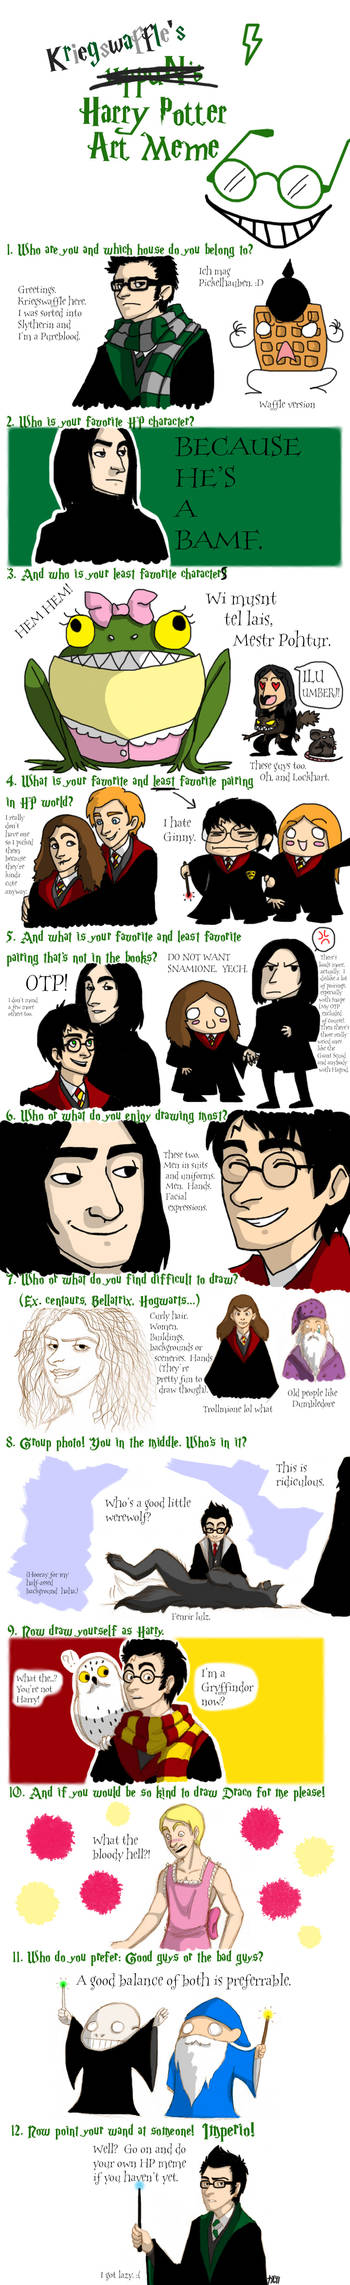 Harry Potter Meme by Kriegswaffle on DeviantArt